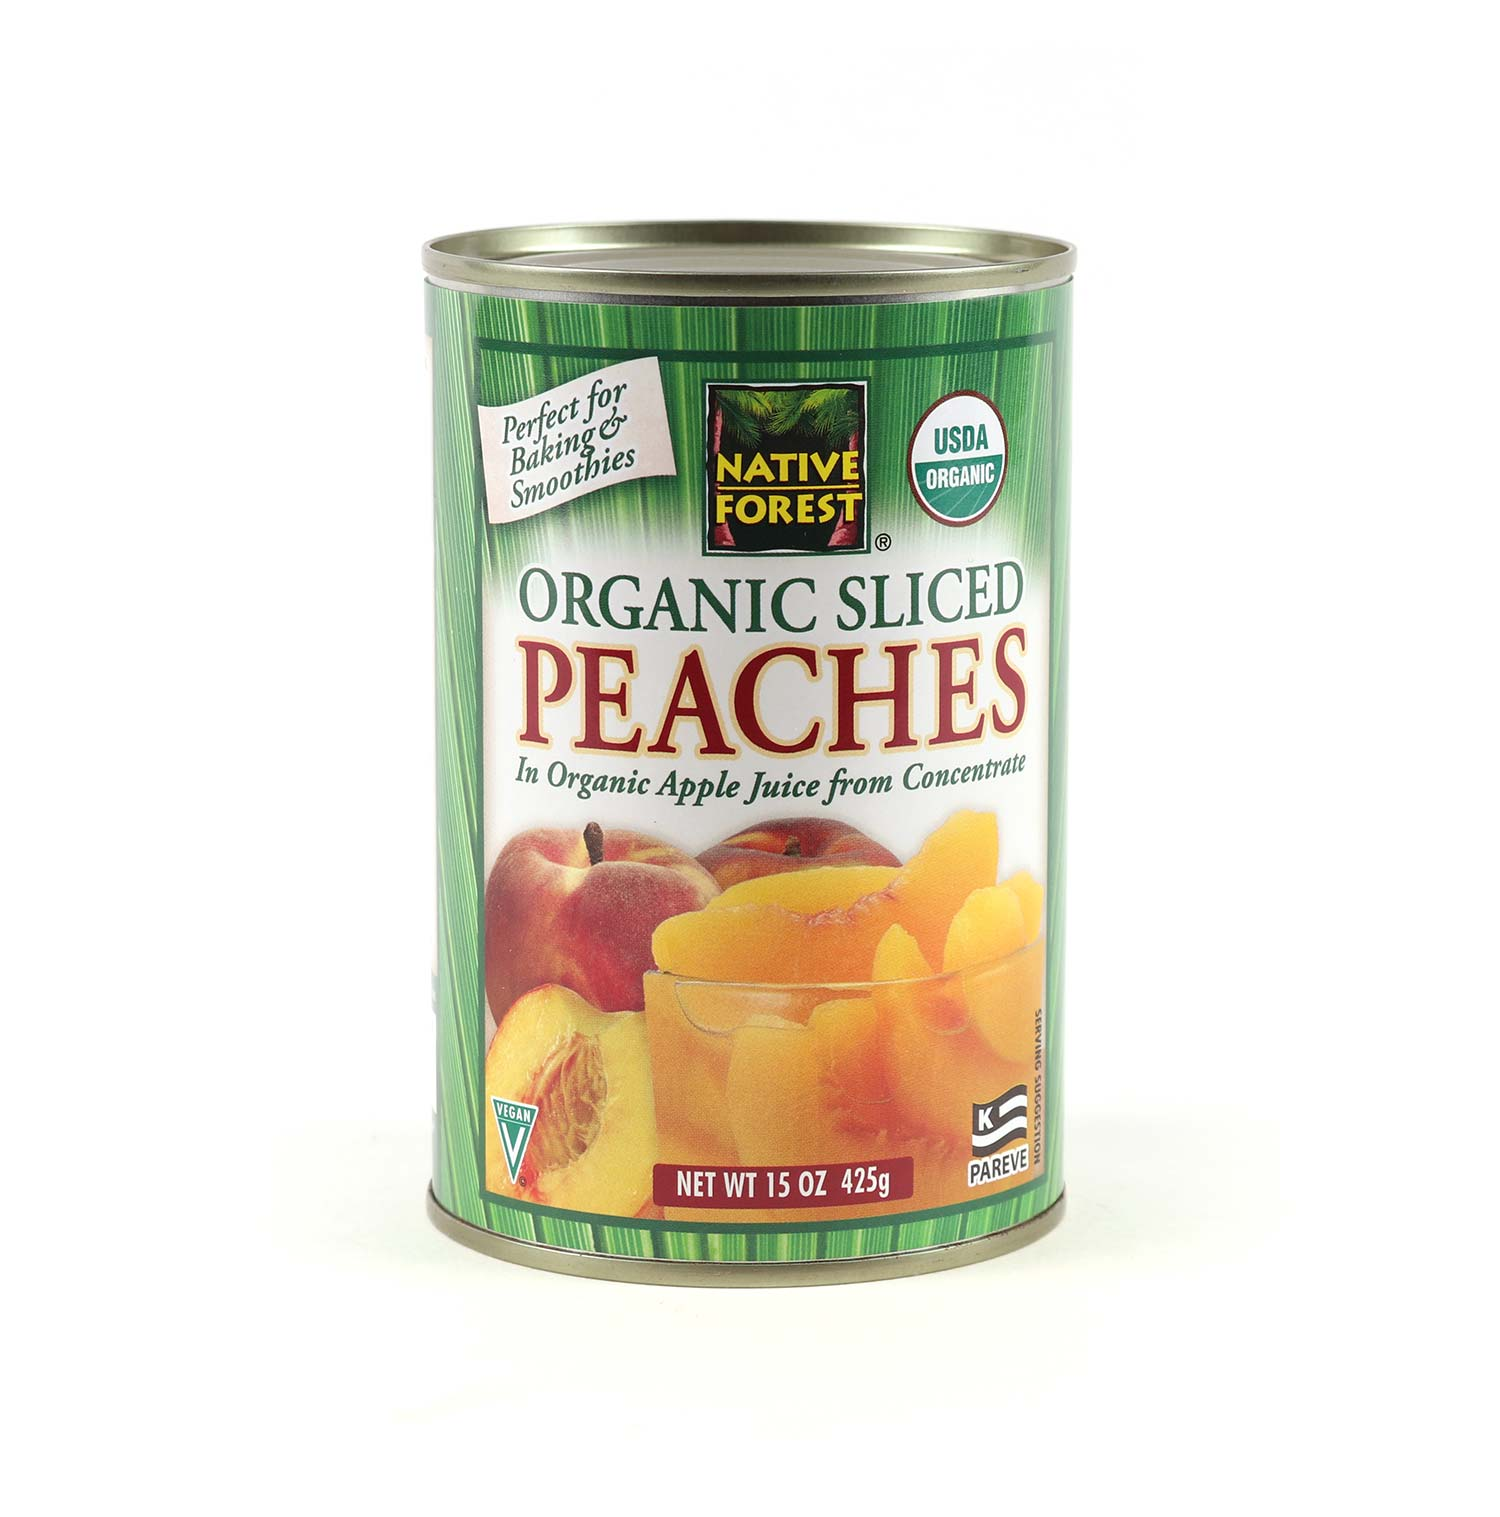 Canned Peaches, Sliced-Organic